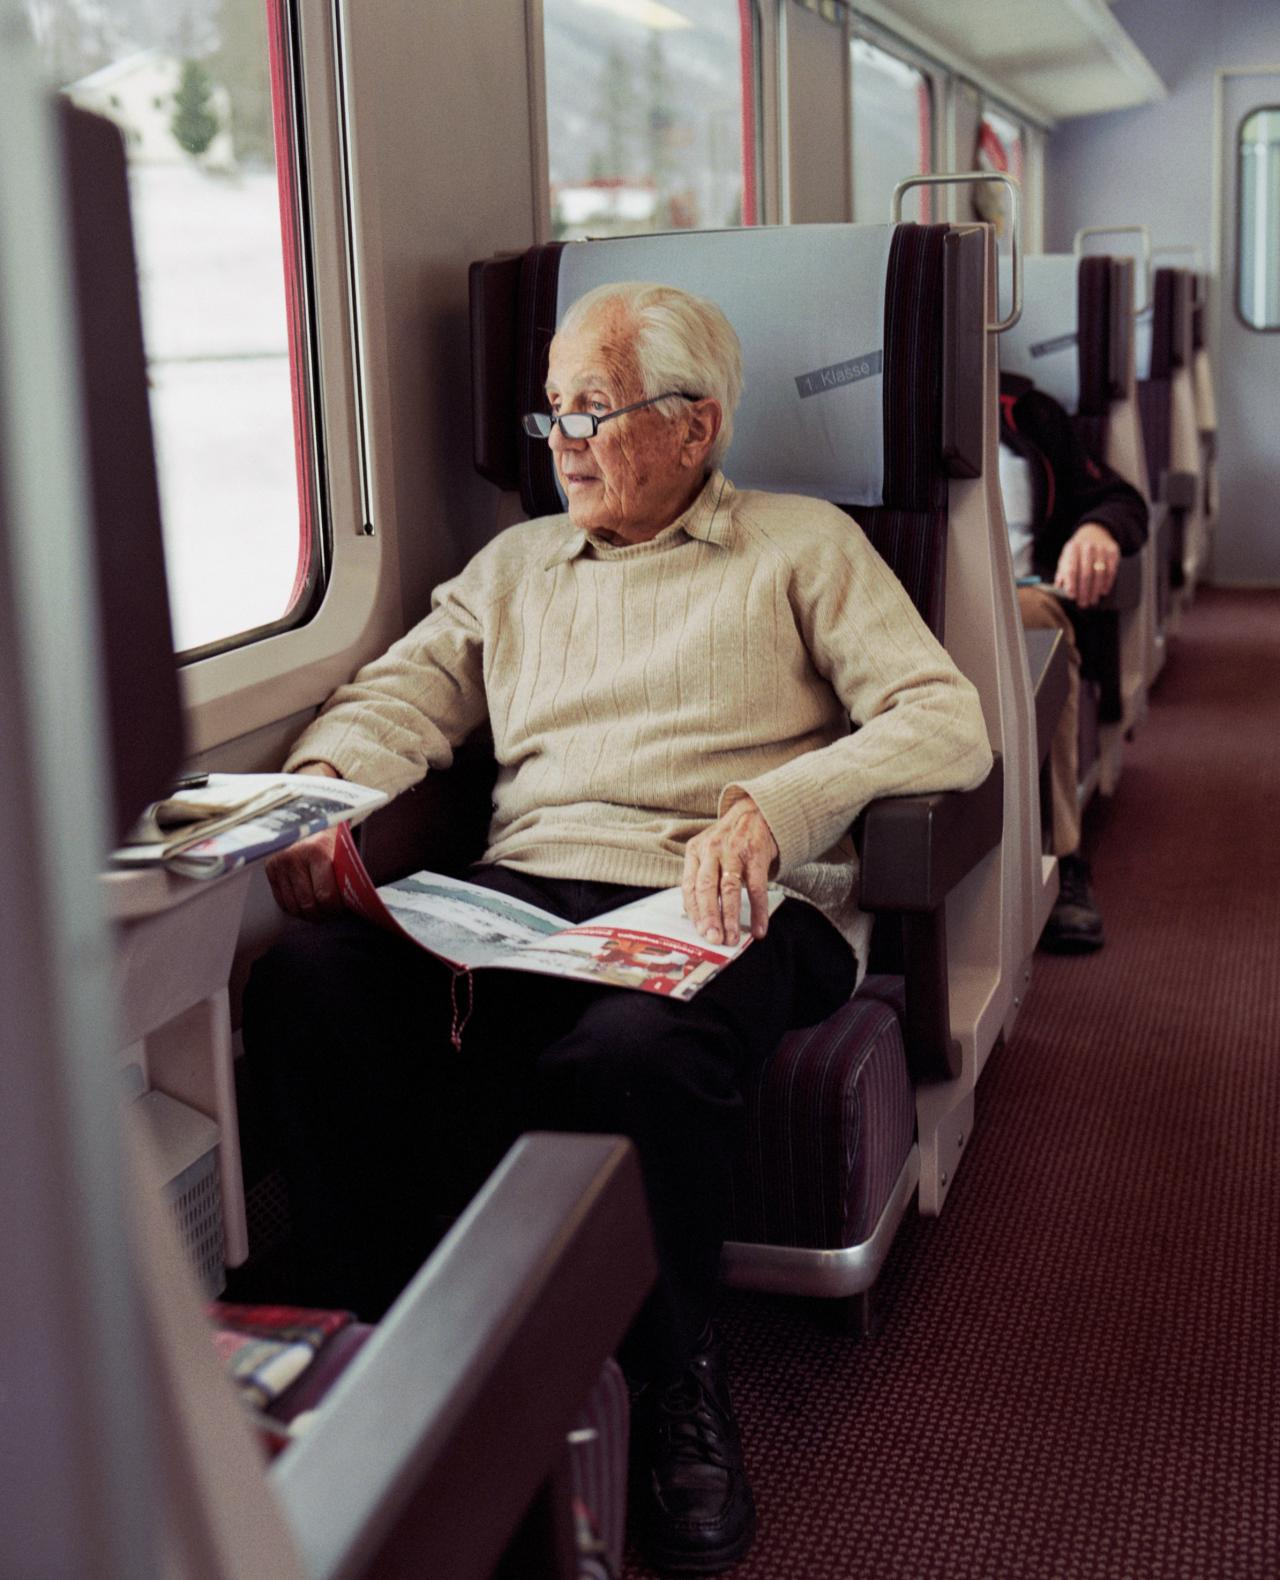 man in train